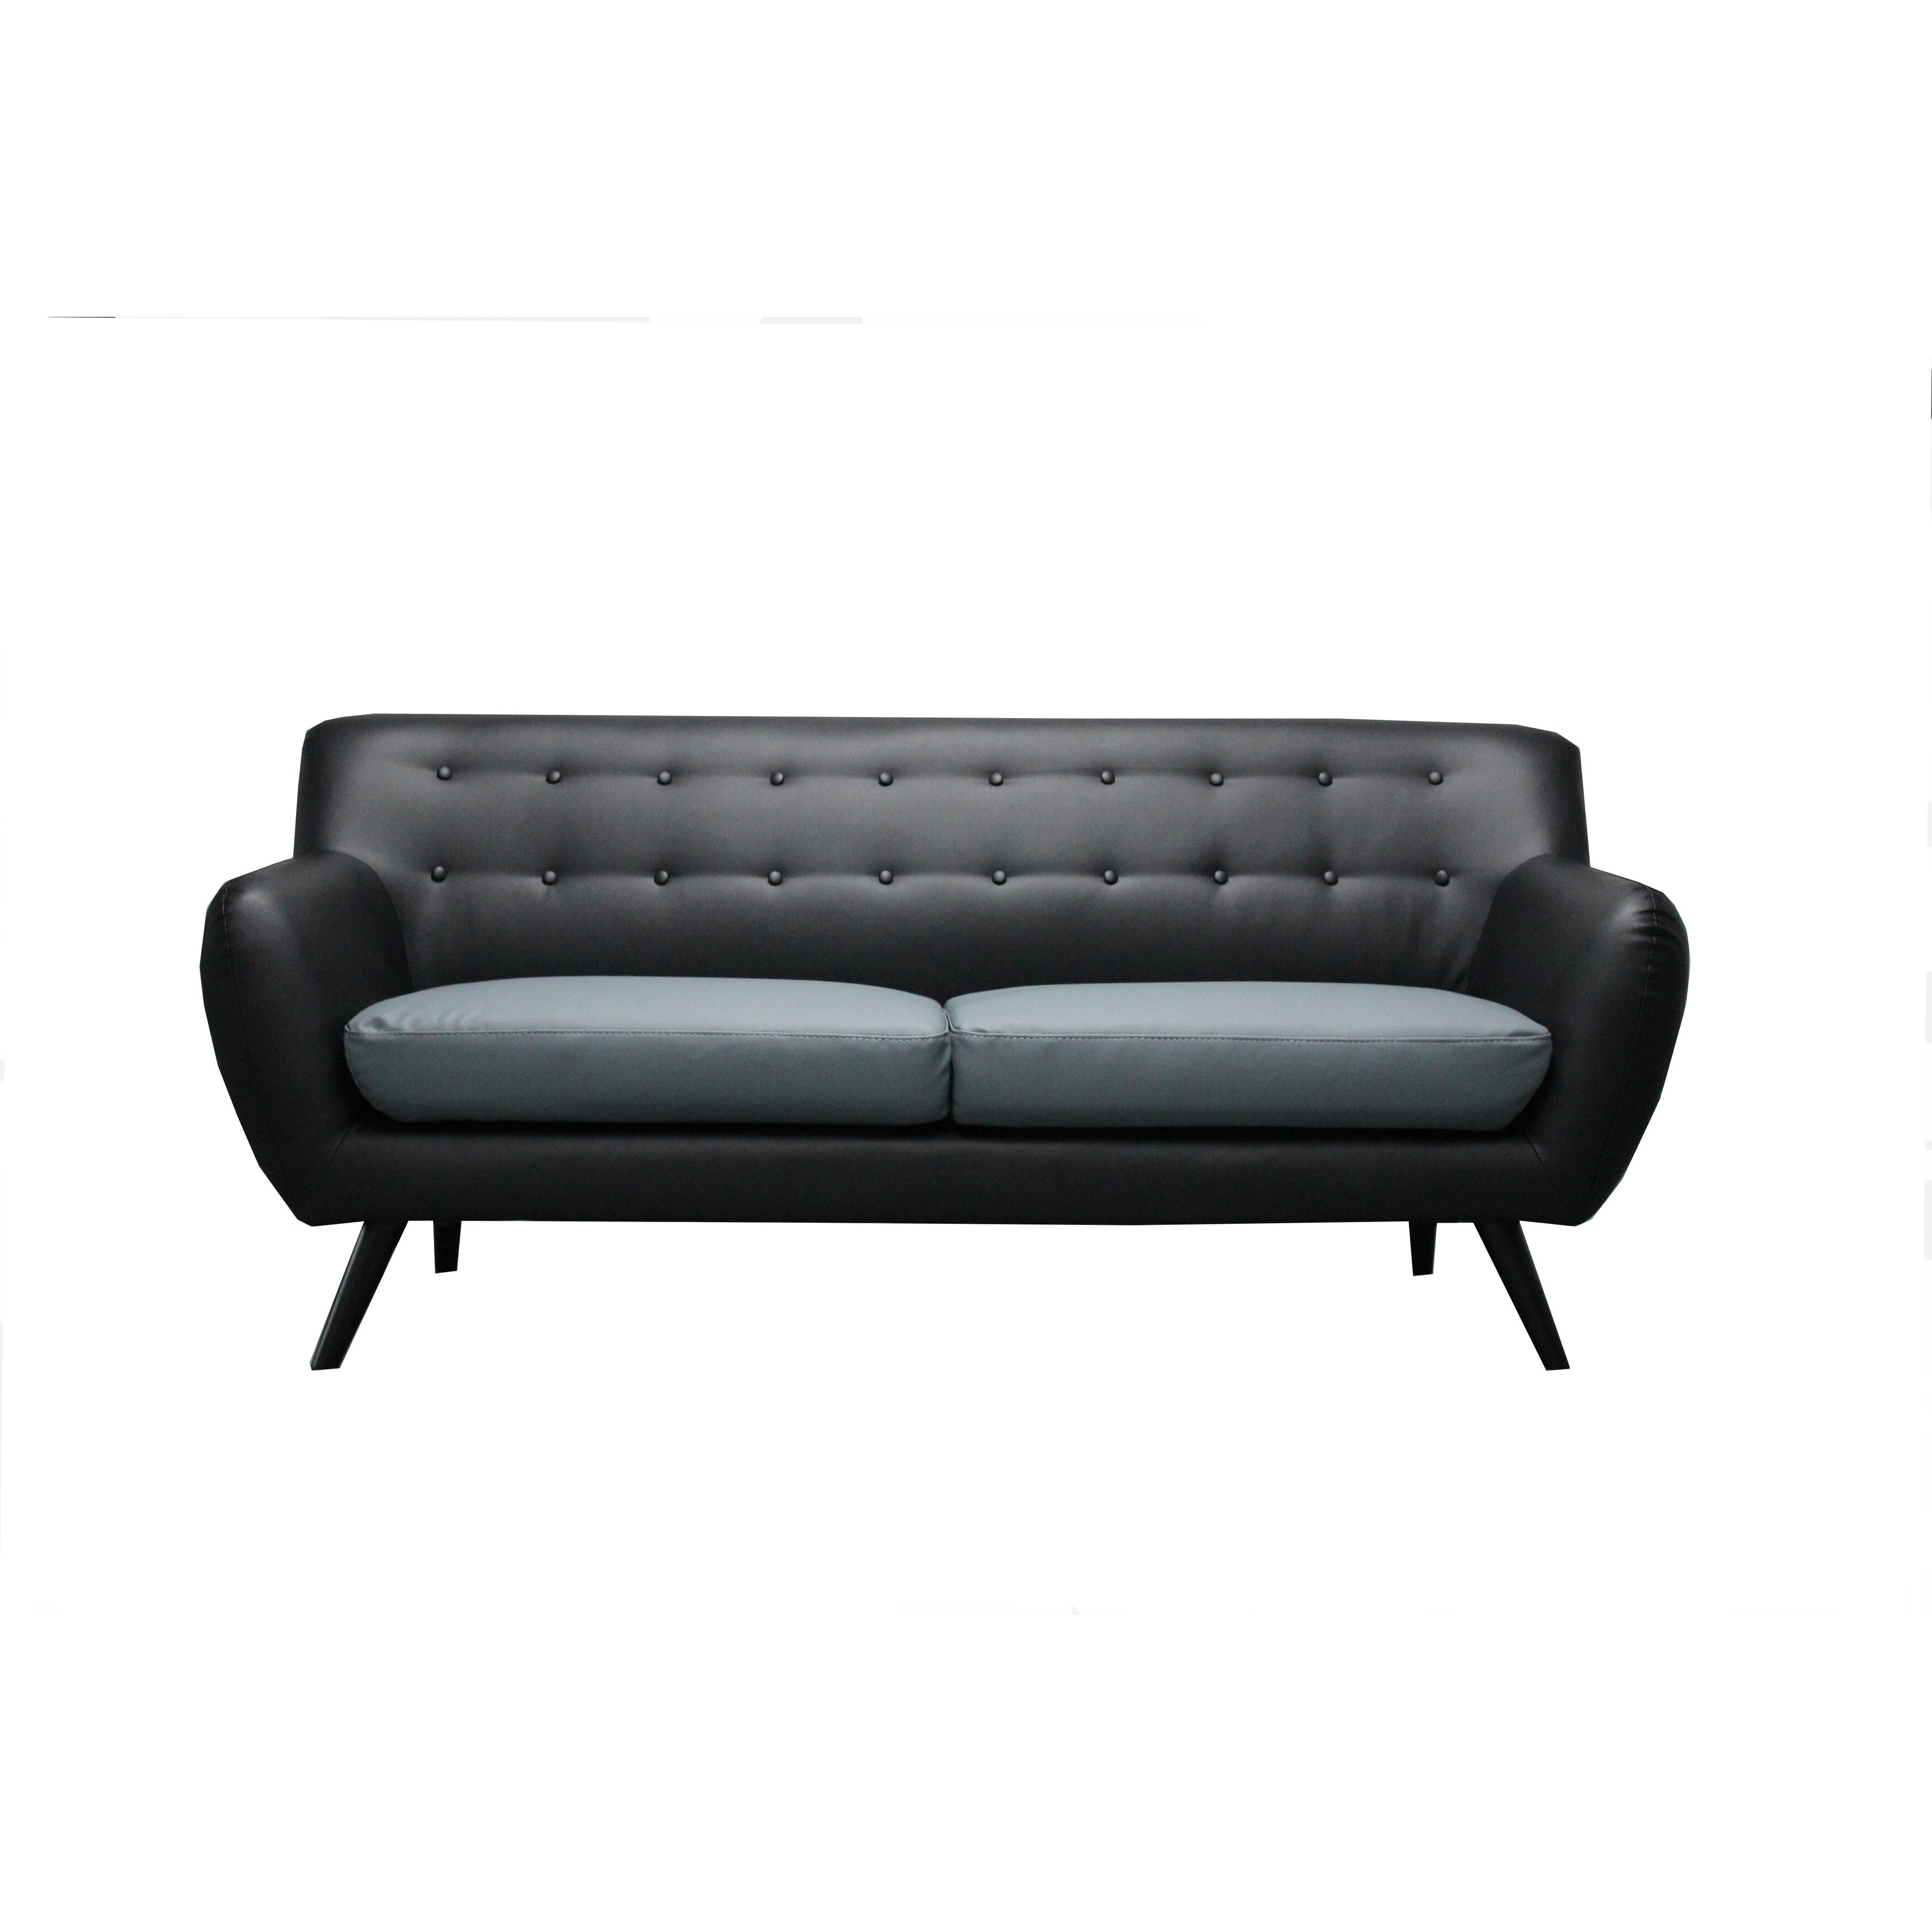 Madison Home USA Mid Century Modern Tufted Sofa. Madison Home USA Mid Century Modern Tufted Sofa   Reviews   Wayfair